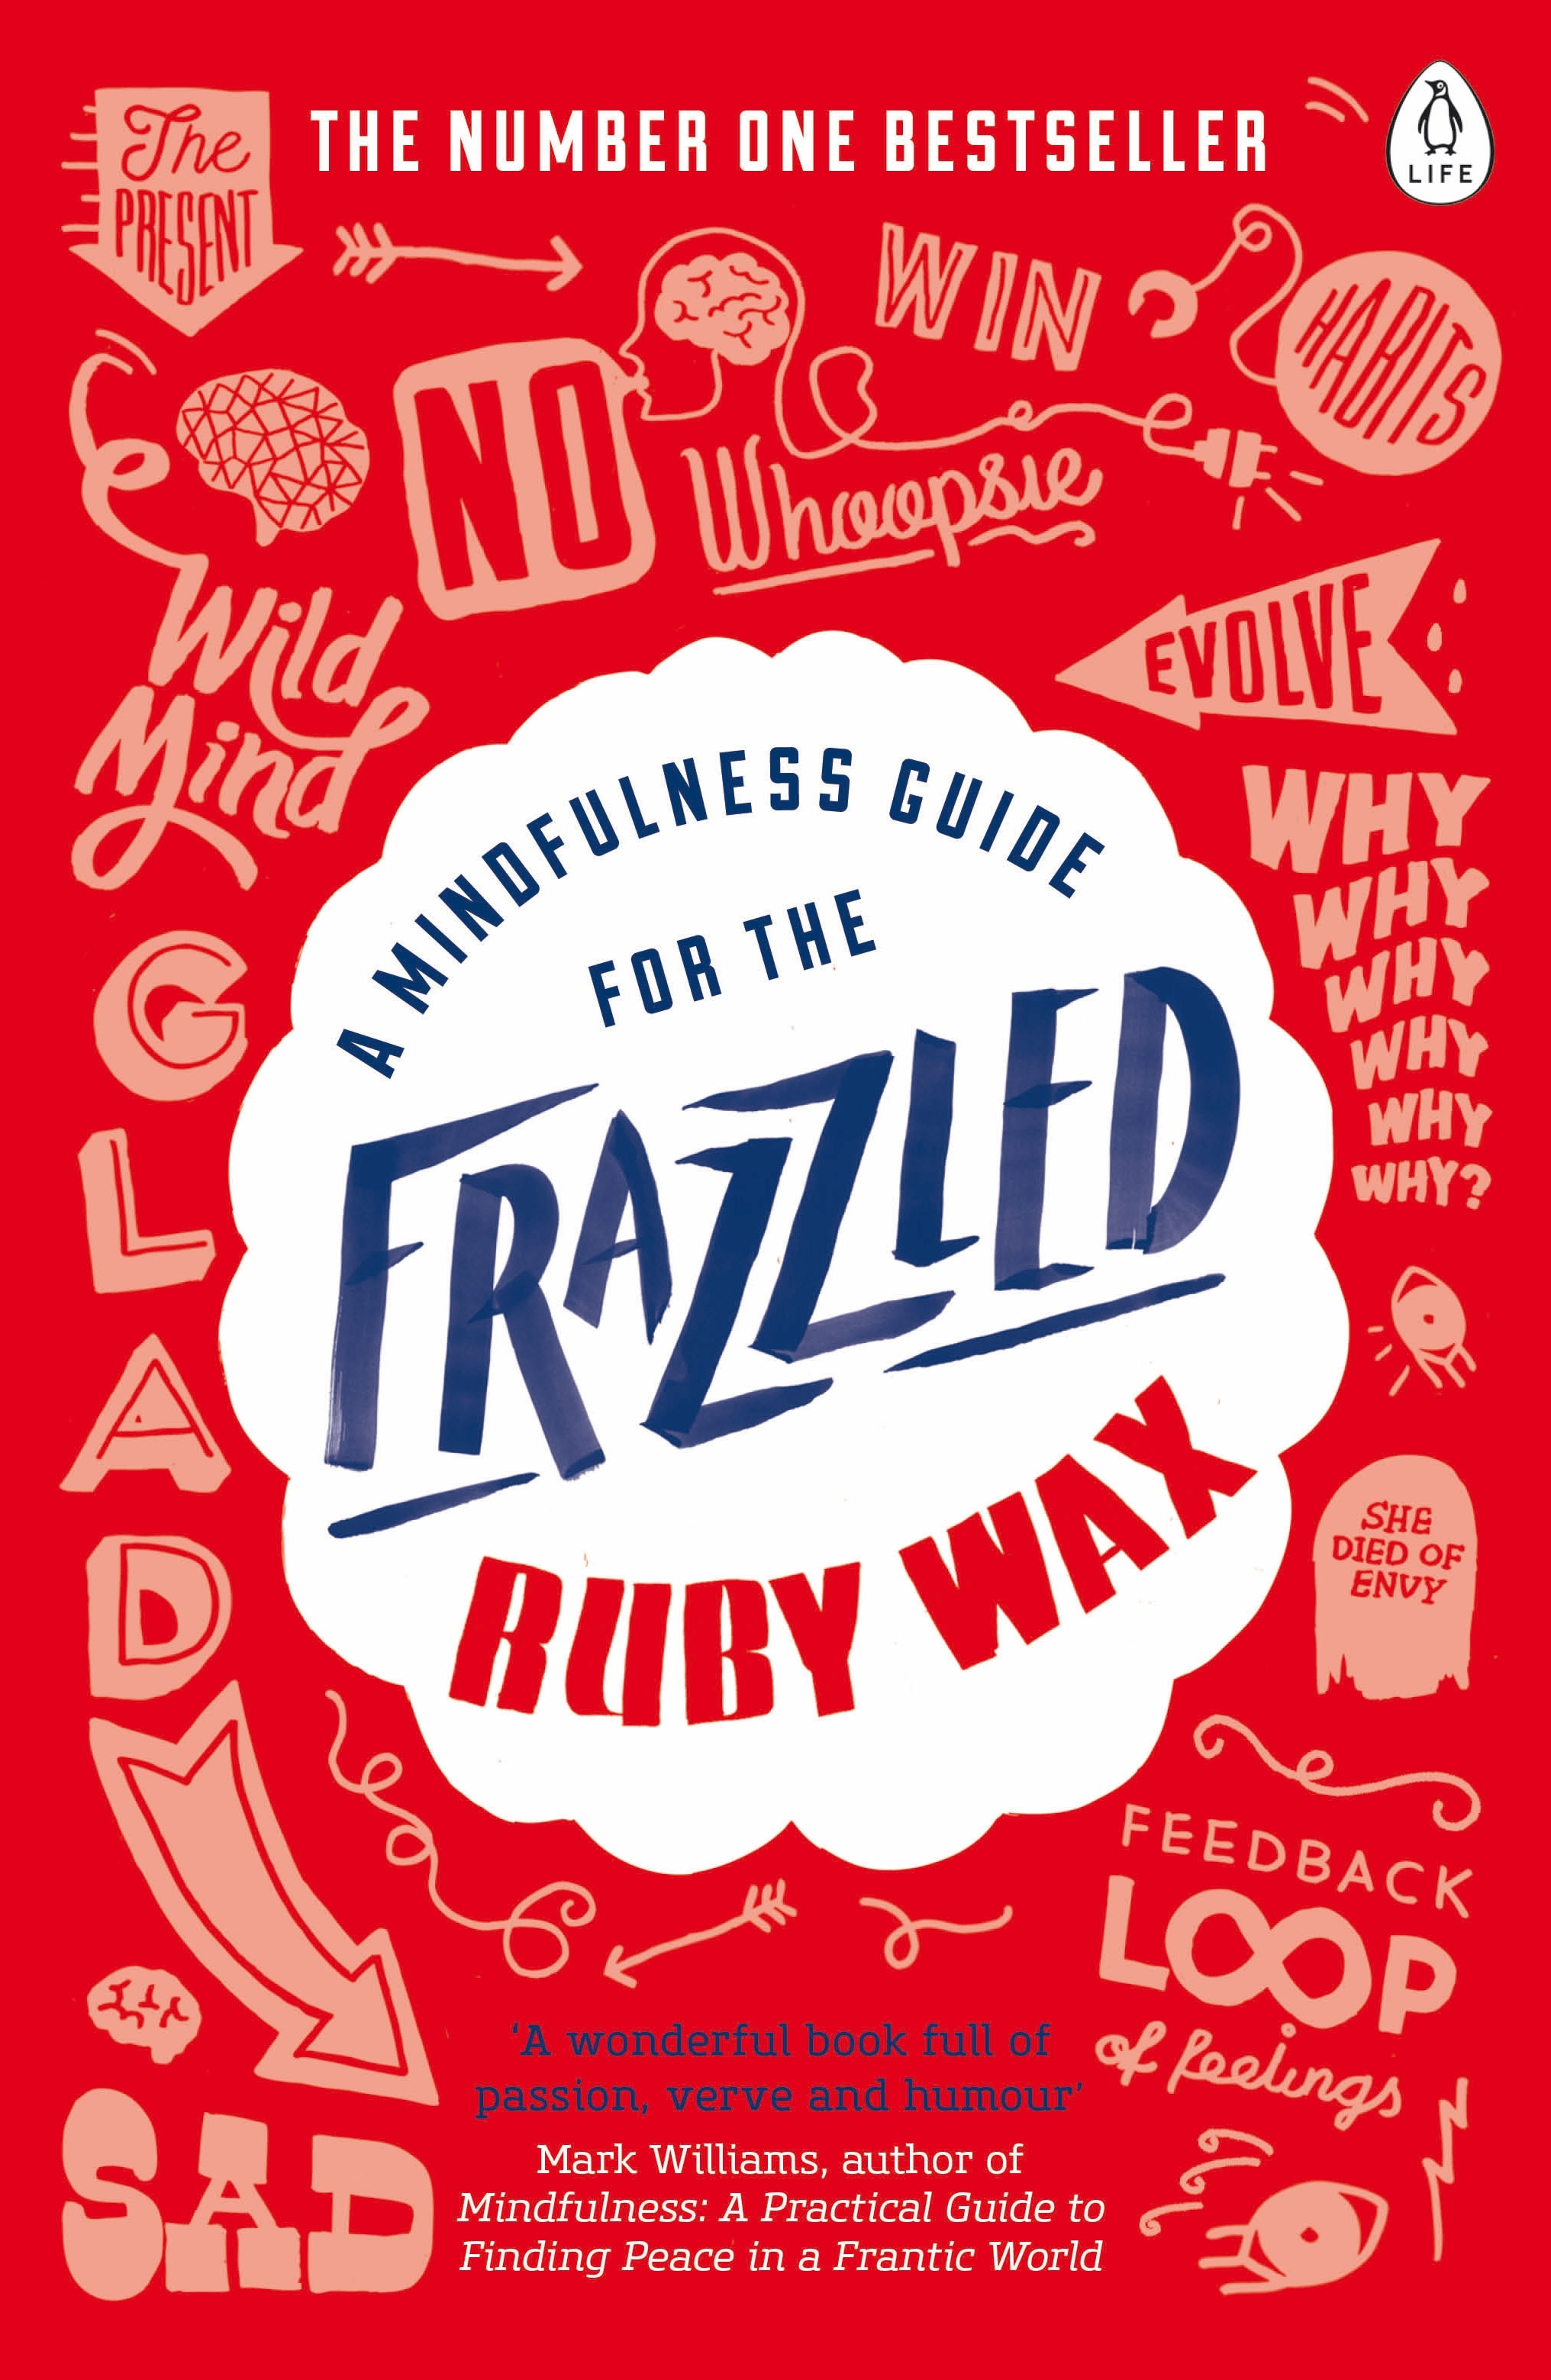 A Mindfulness Guide For The Frazzled By Ruby Wax Penguin